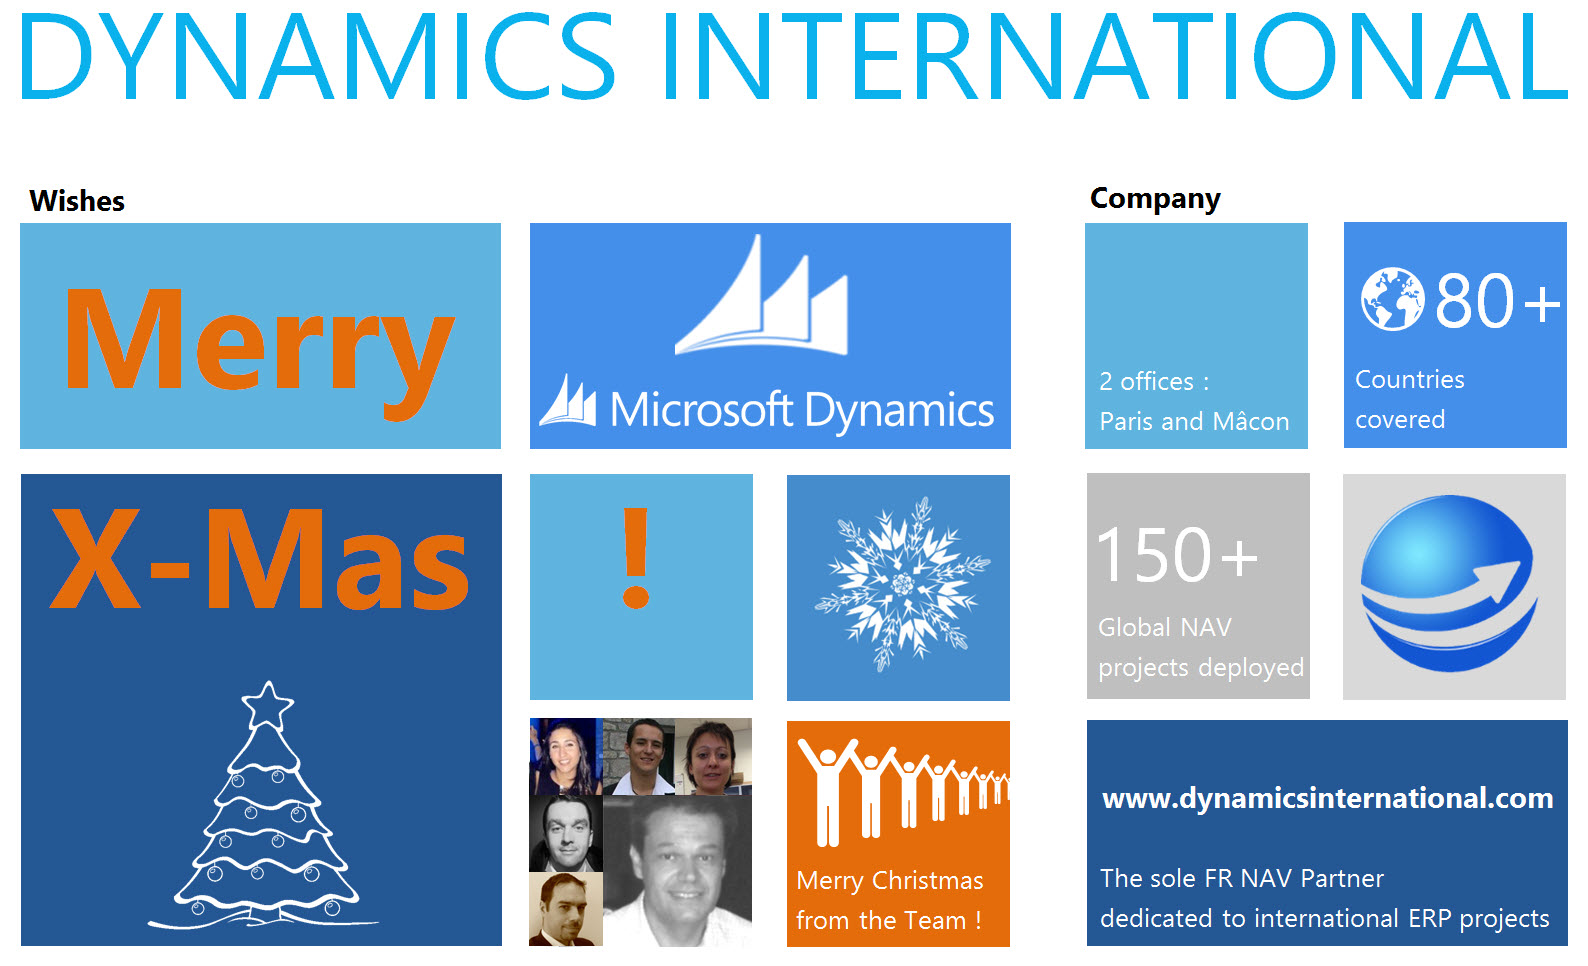 Voeux DynInter Noël 2013 - Christmas wishes - Global ERP - NAV